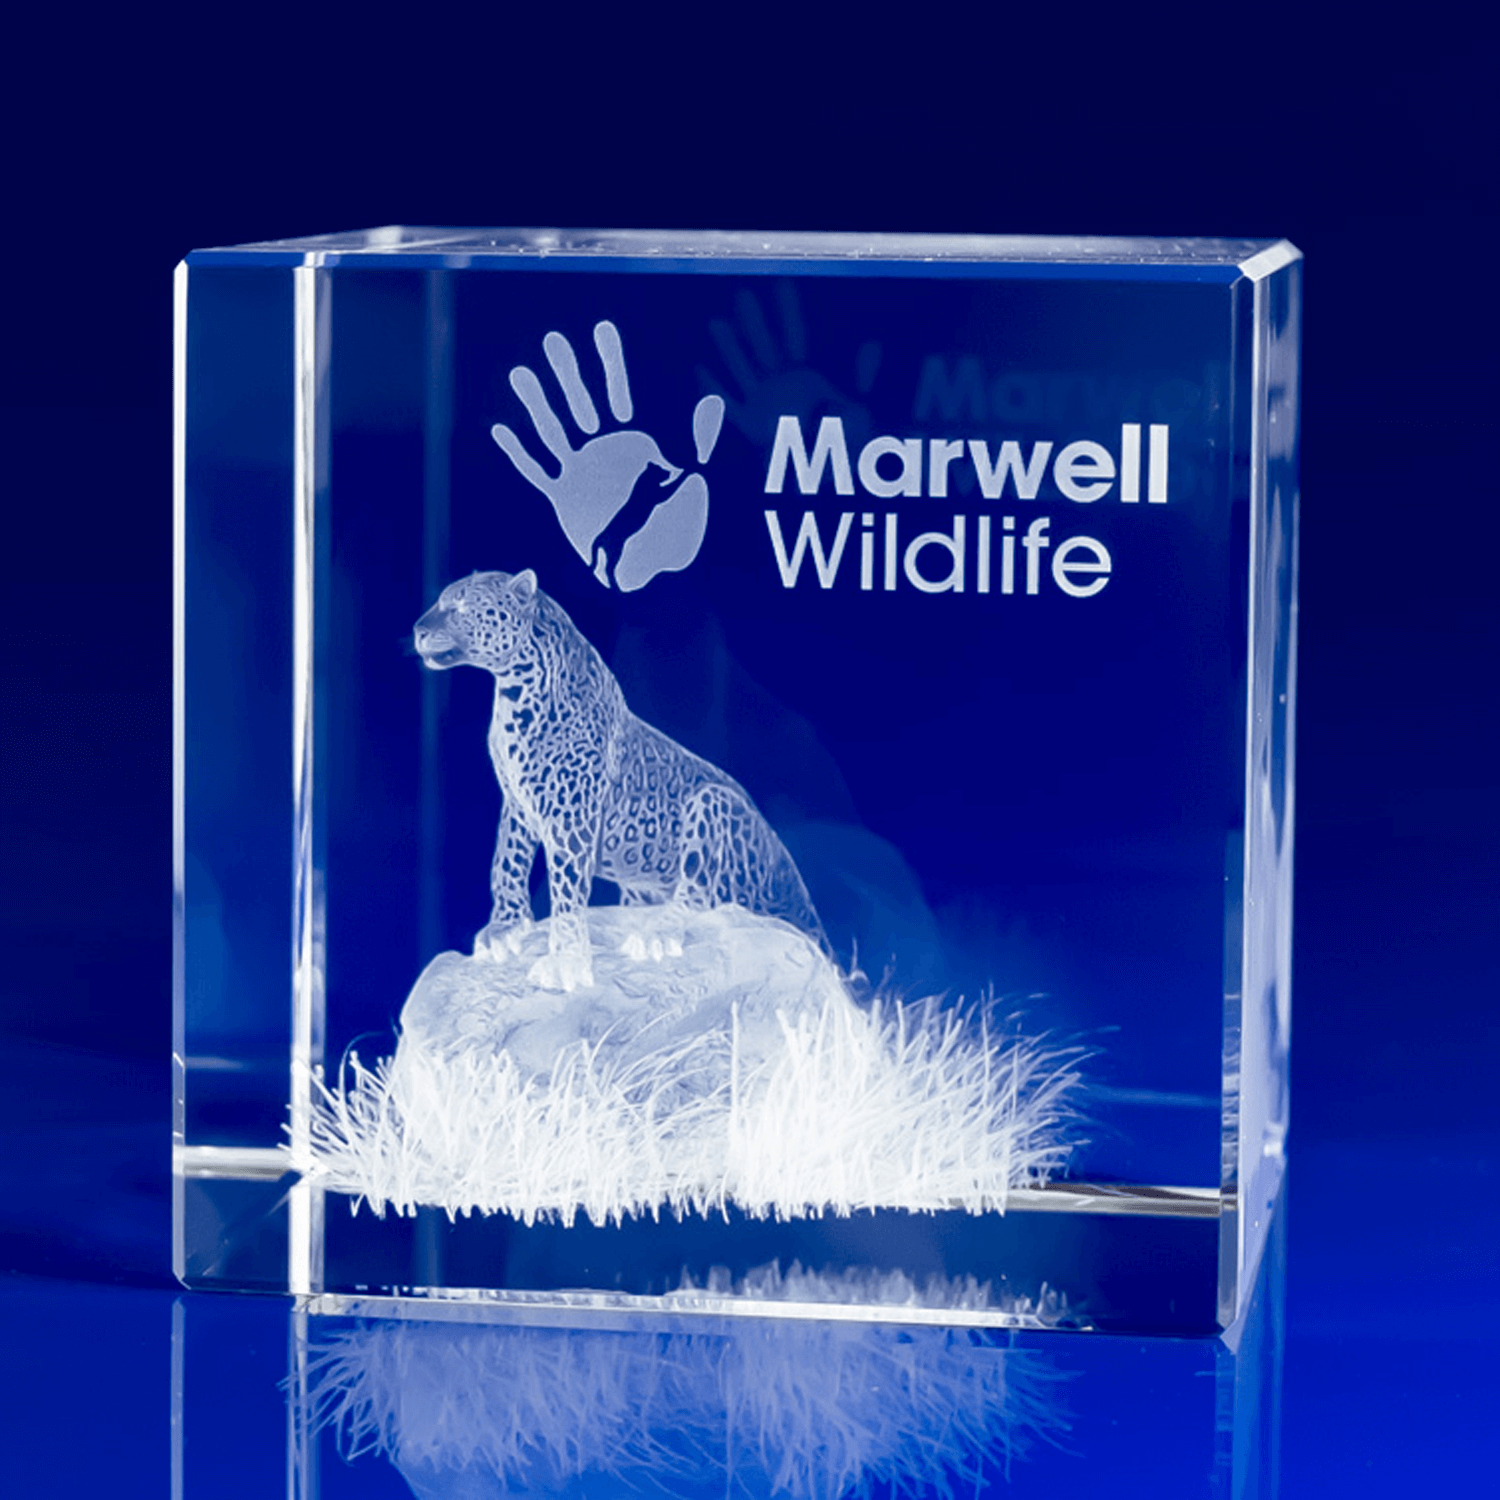 3D Engraved Crystal Award Cube